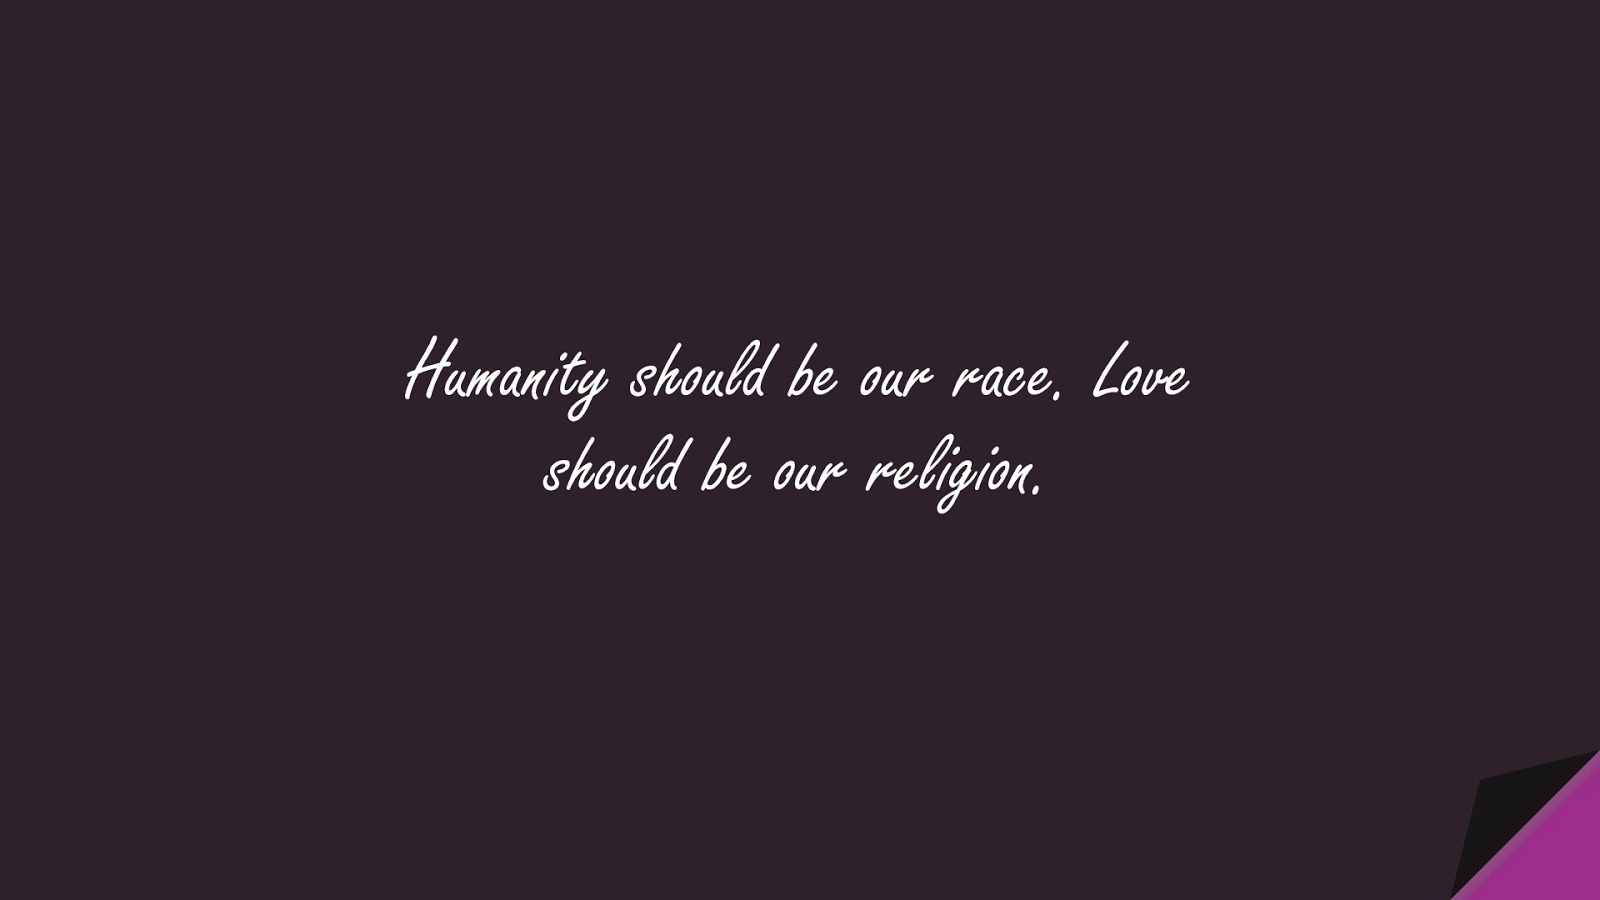 Humanity should be our race. Love should be our religion.FALSE